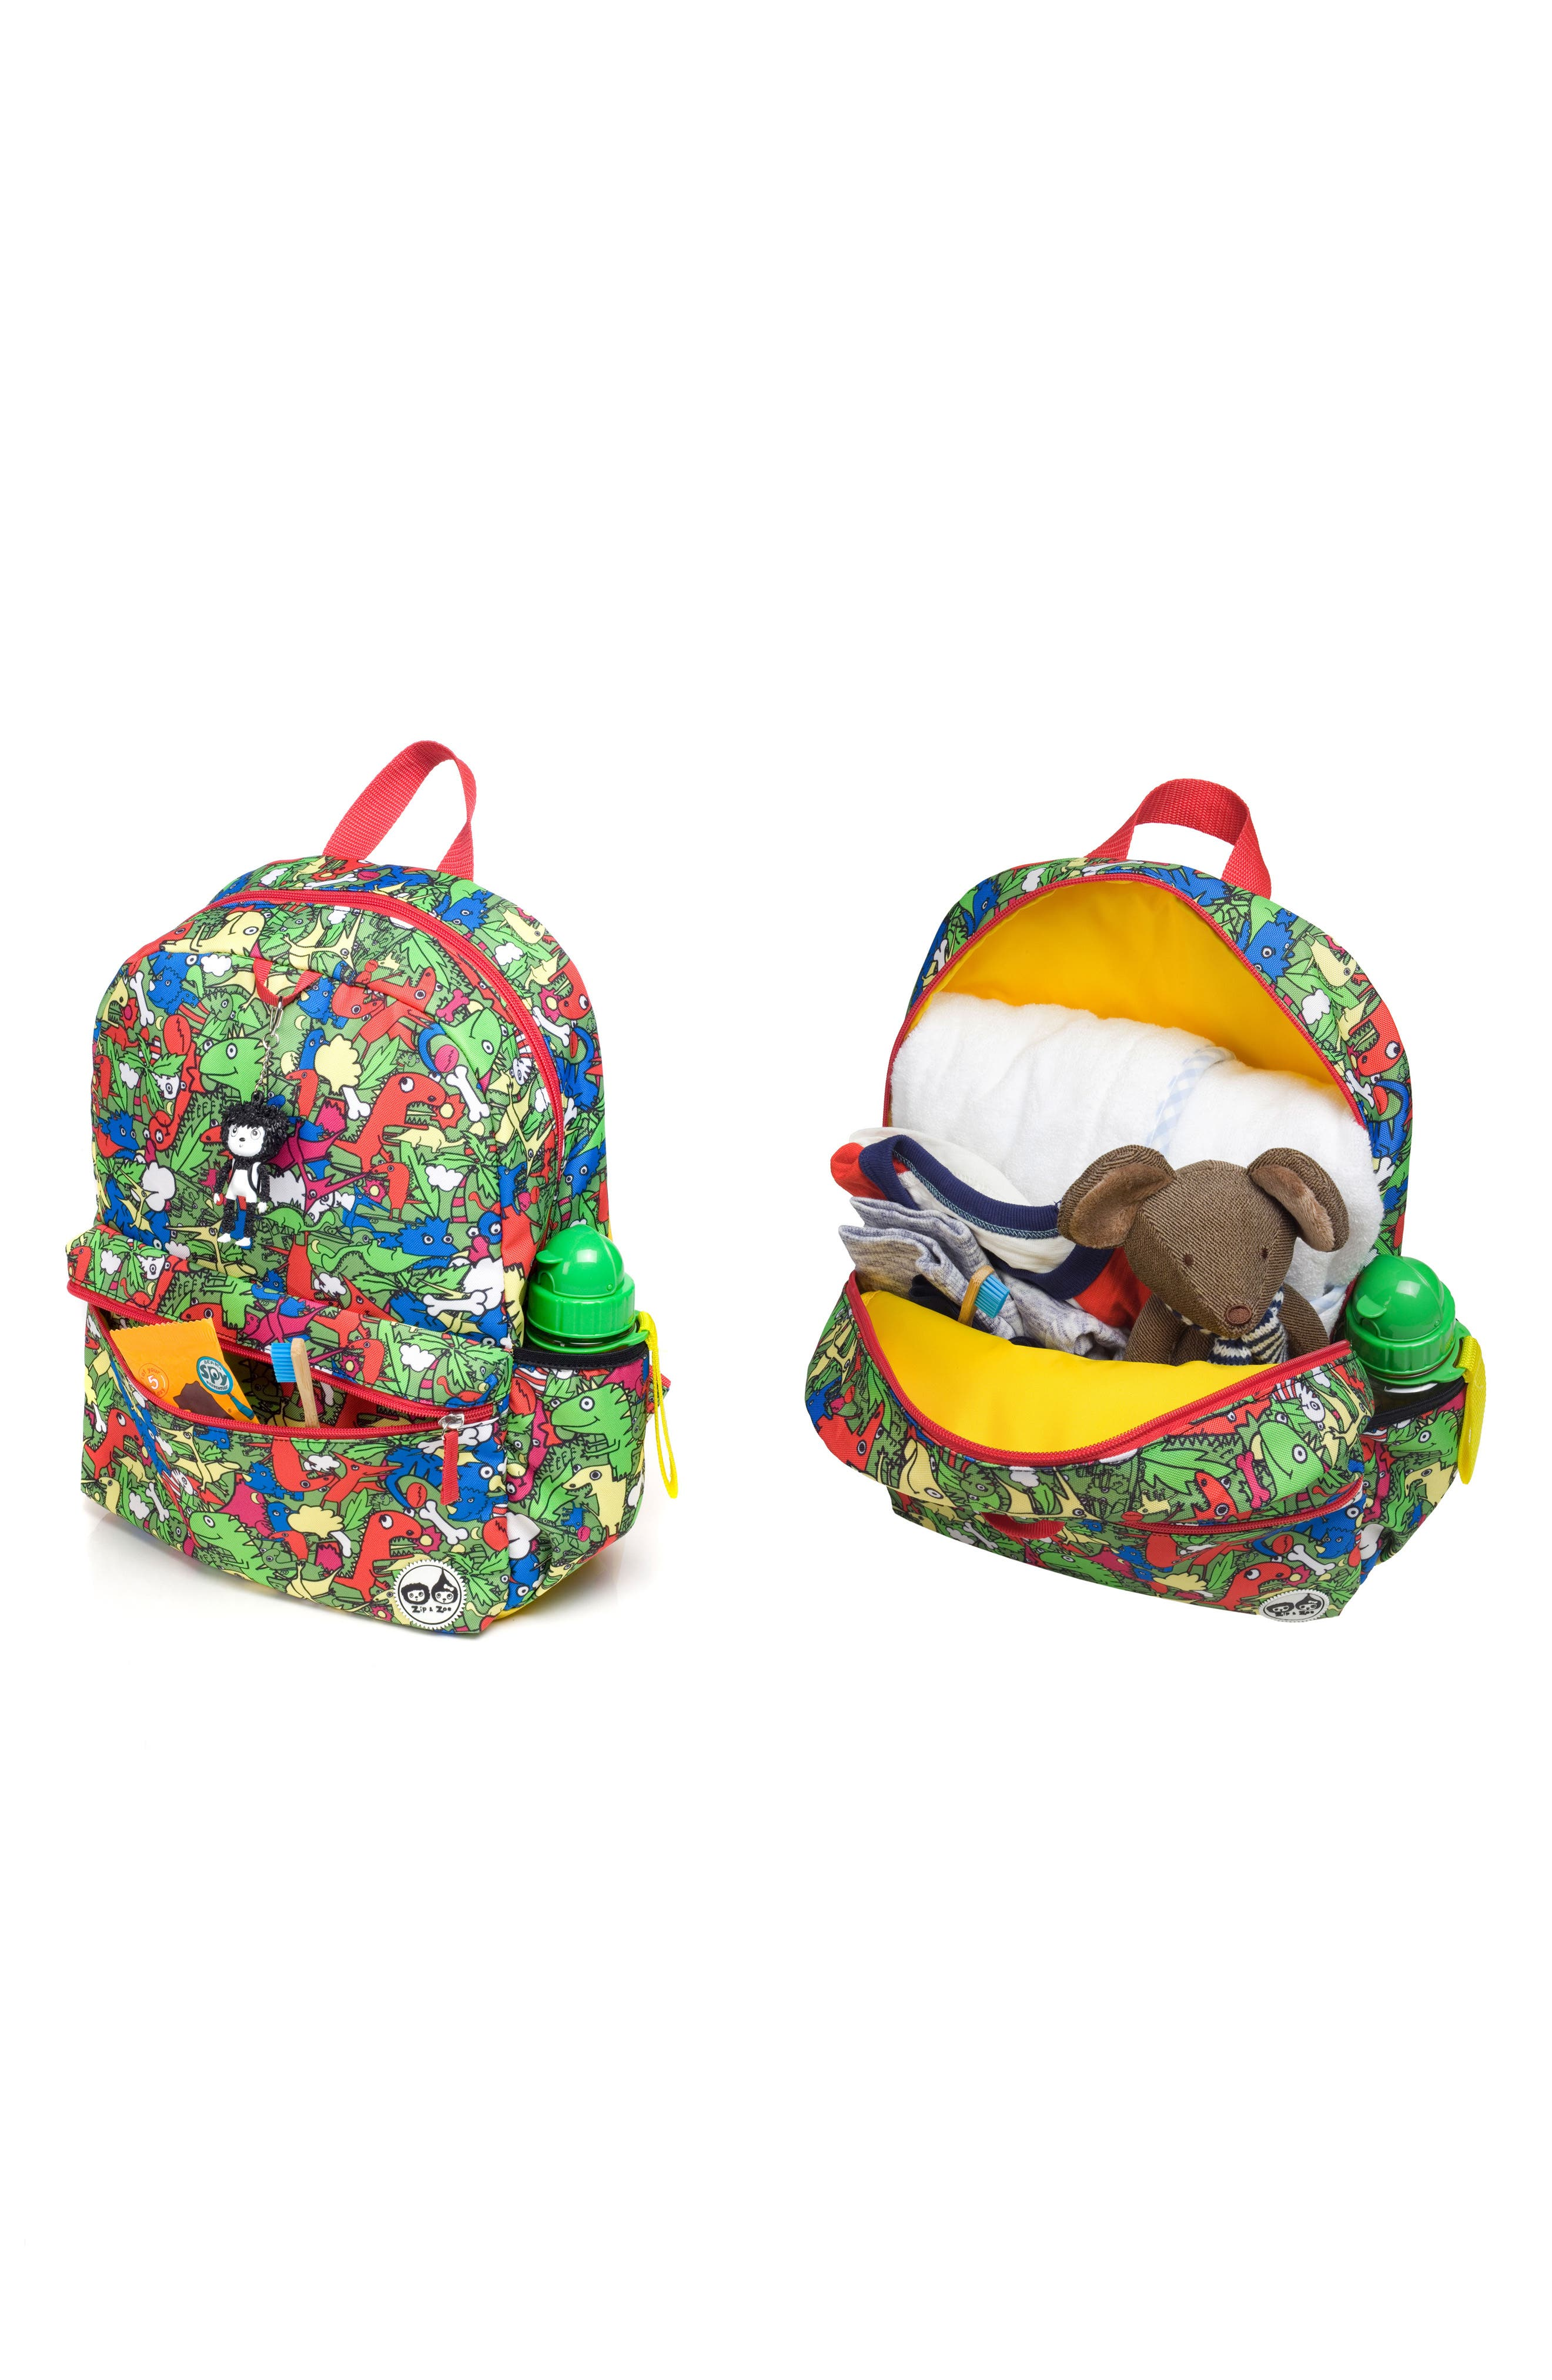 Zip & Zoe Junior Backpack Set,                             Alternate thumbnail 6, color,                             Dino Multi/ Dylan